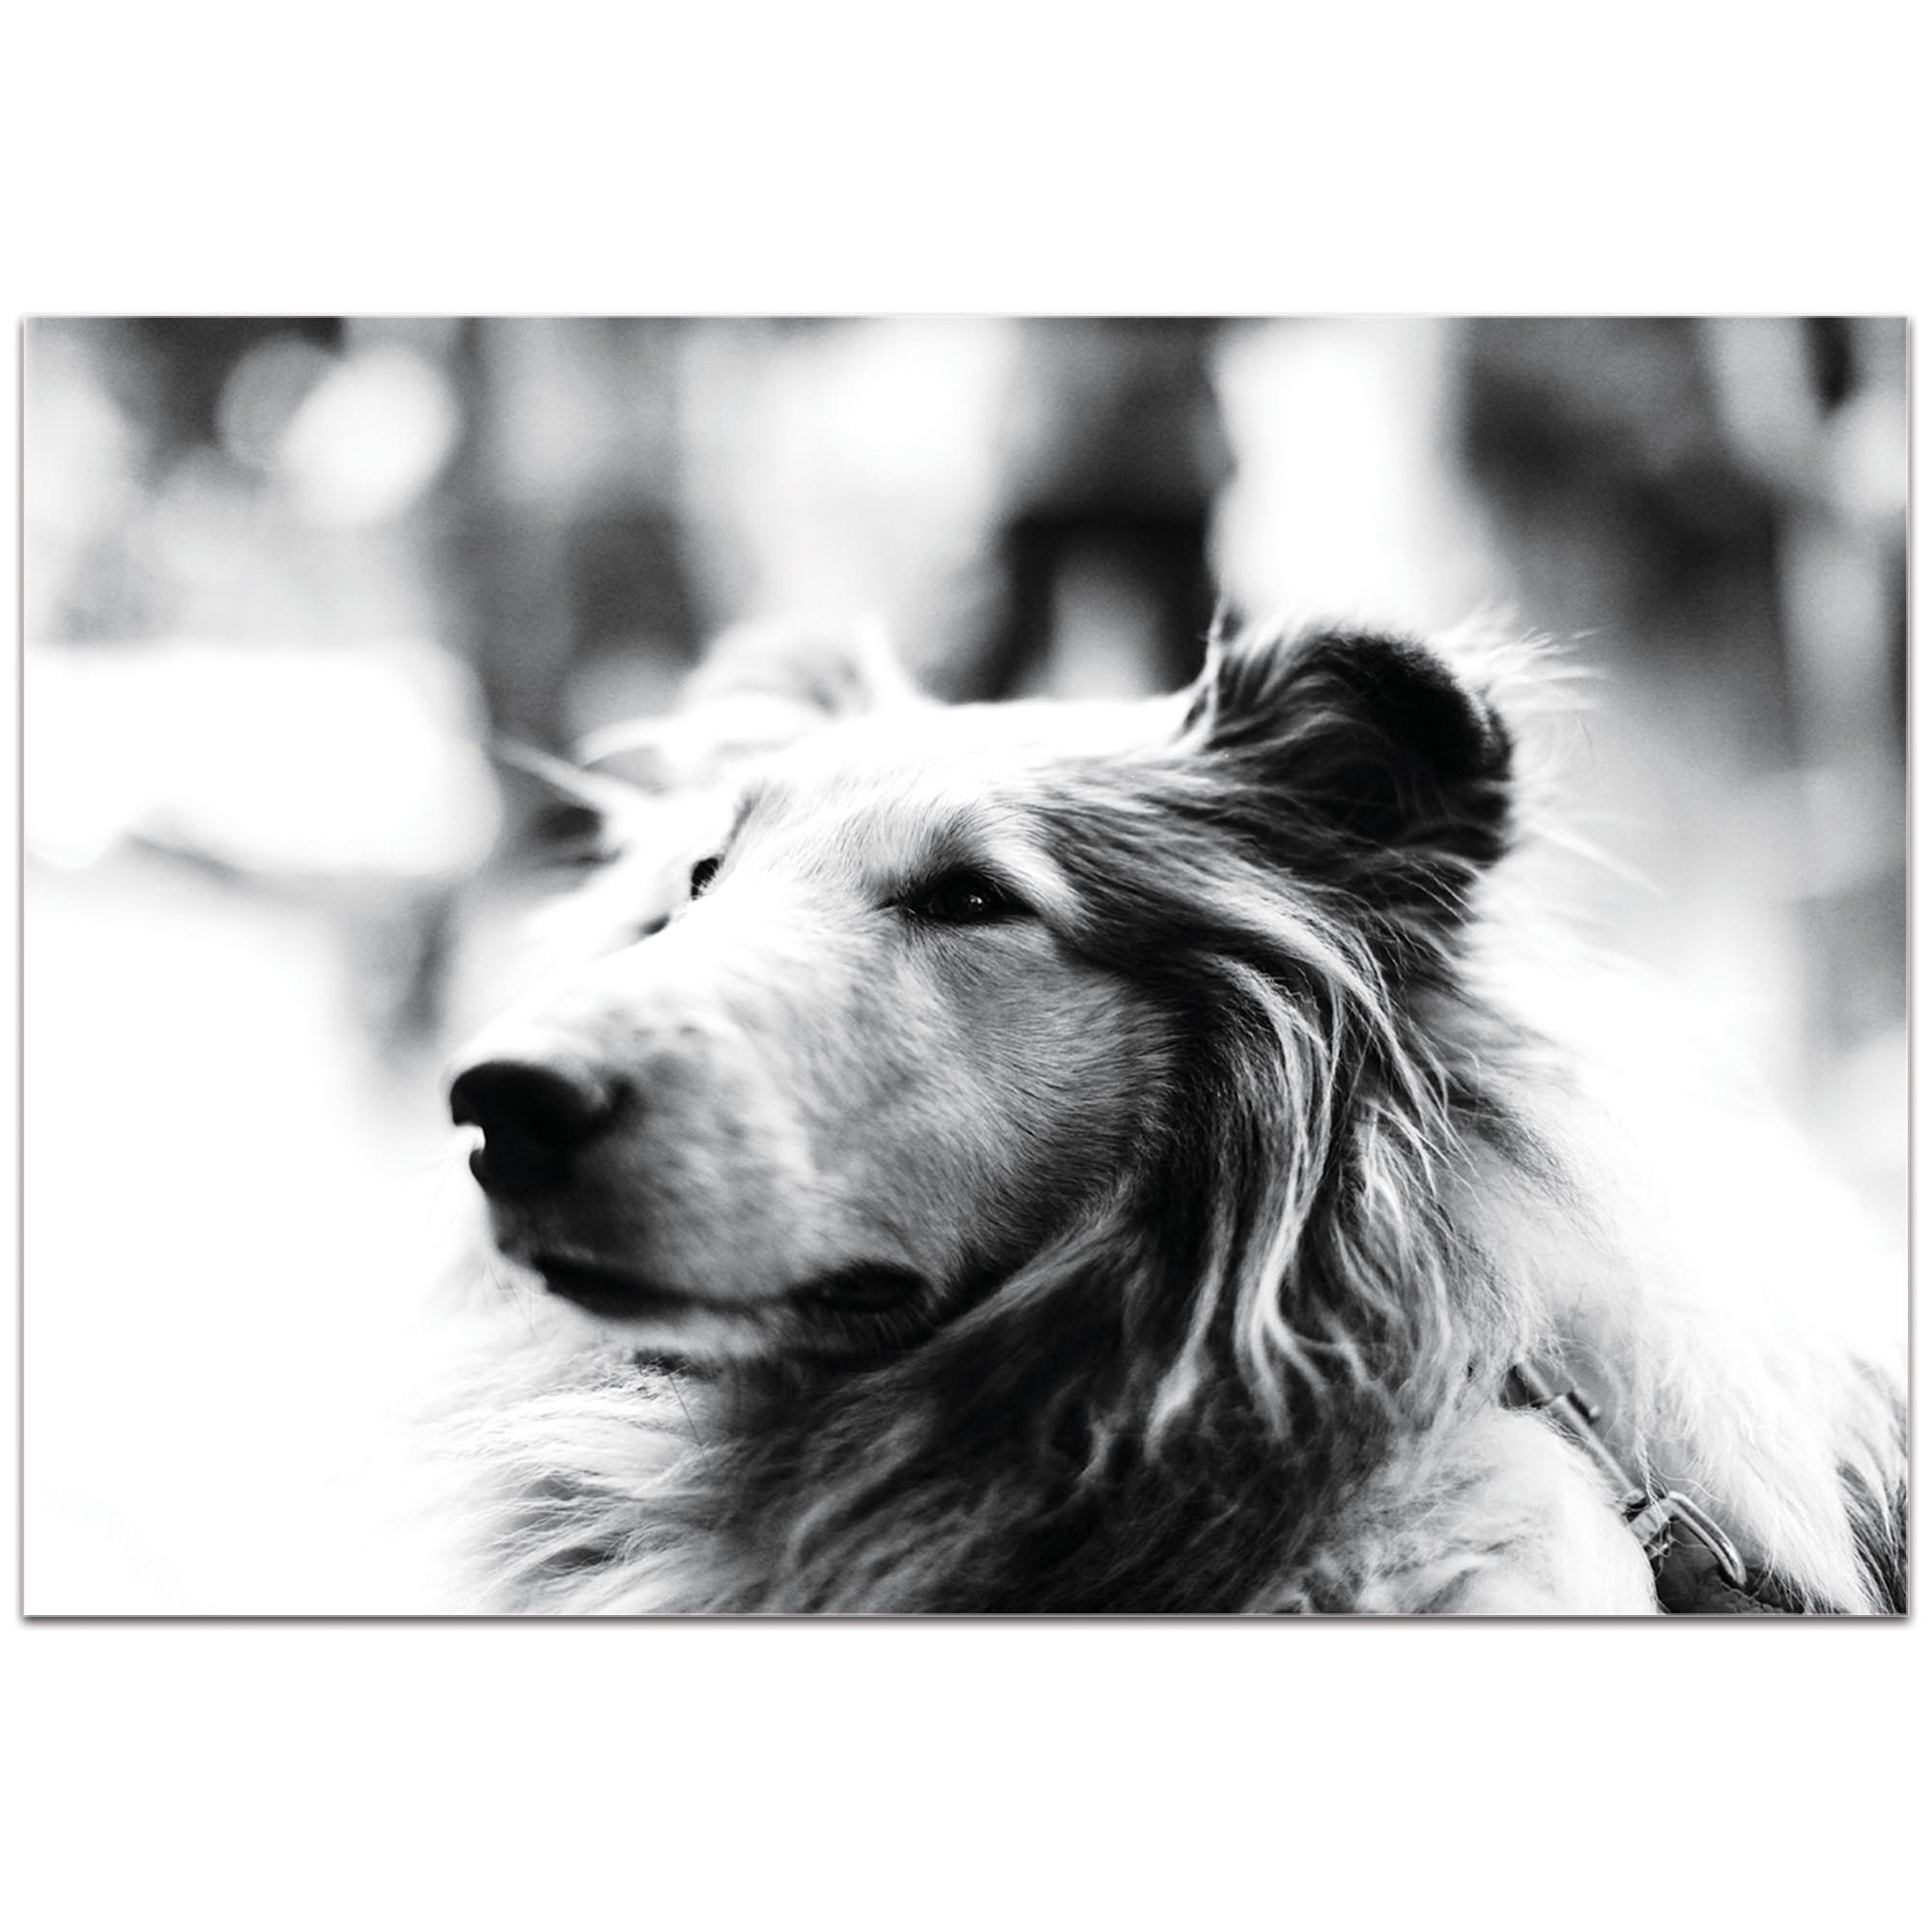 Casual Wall Art 'Loyal Friend' - Wildlife Decor on Metal or Plexiglass - Image 2